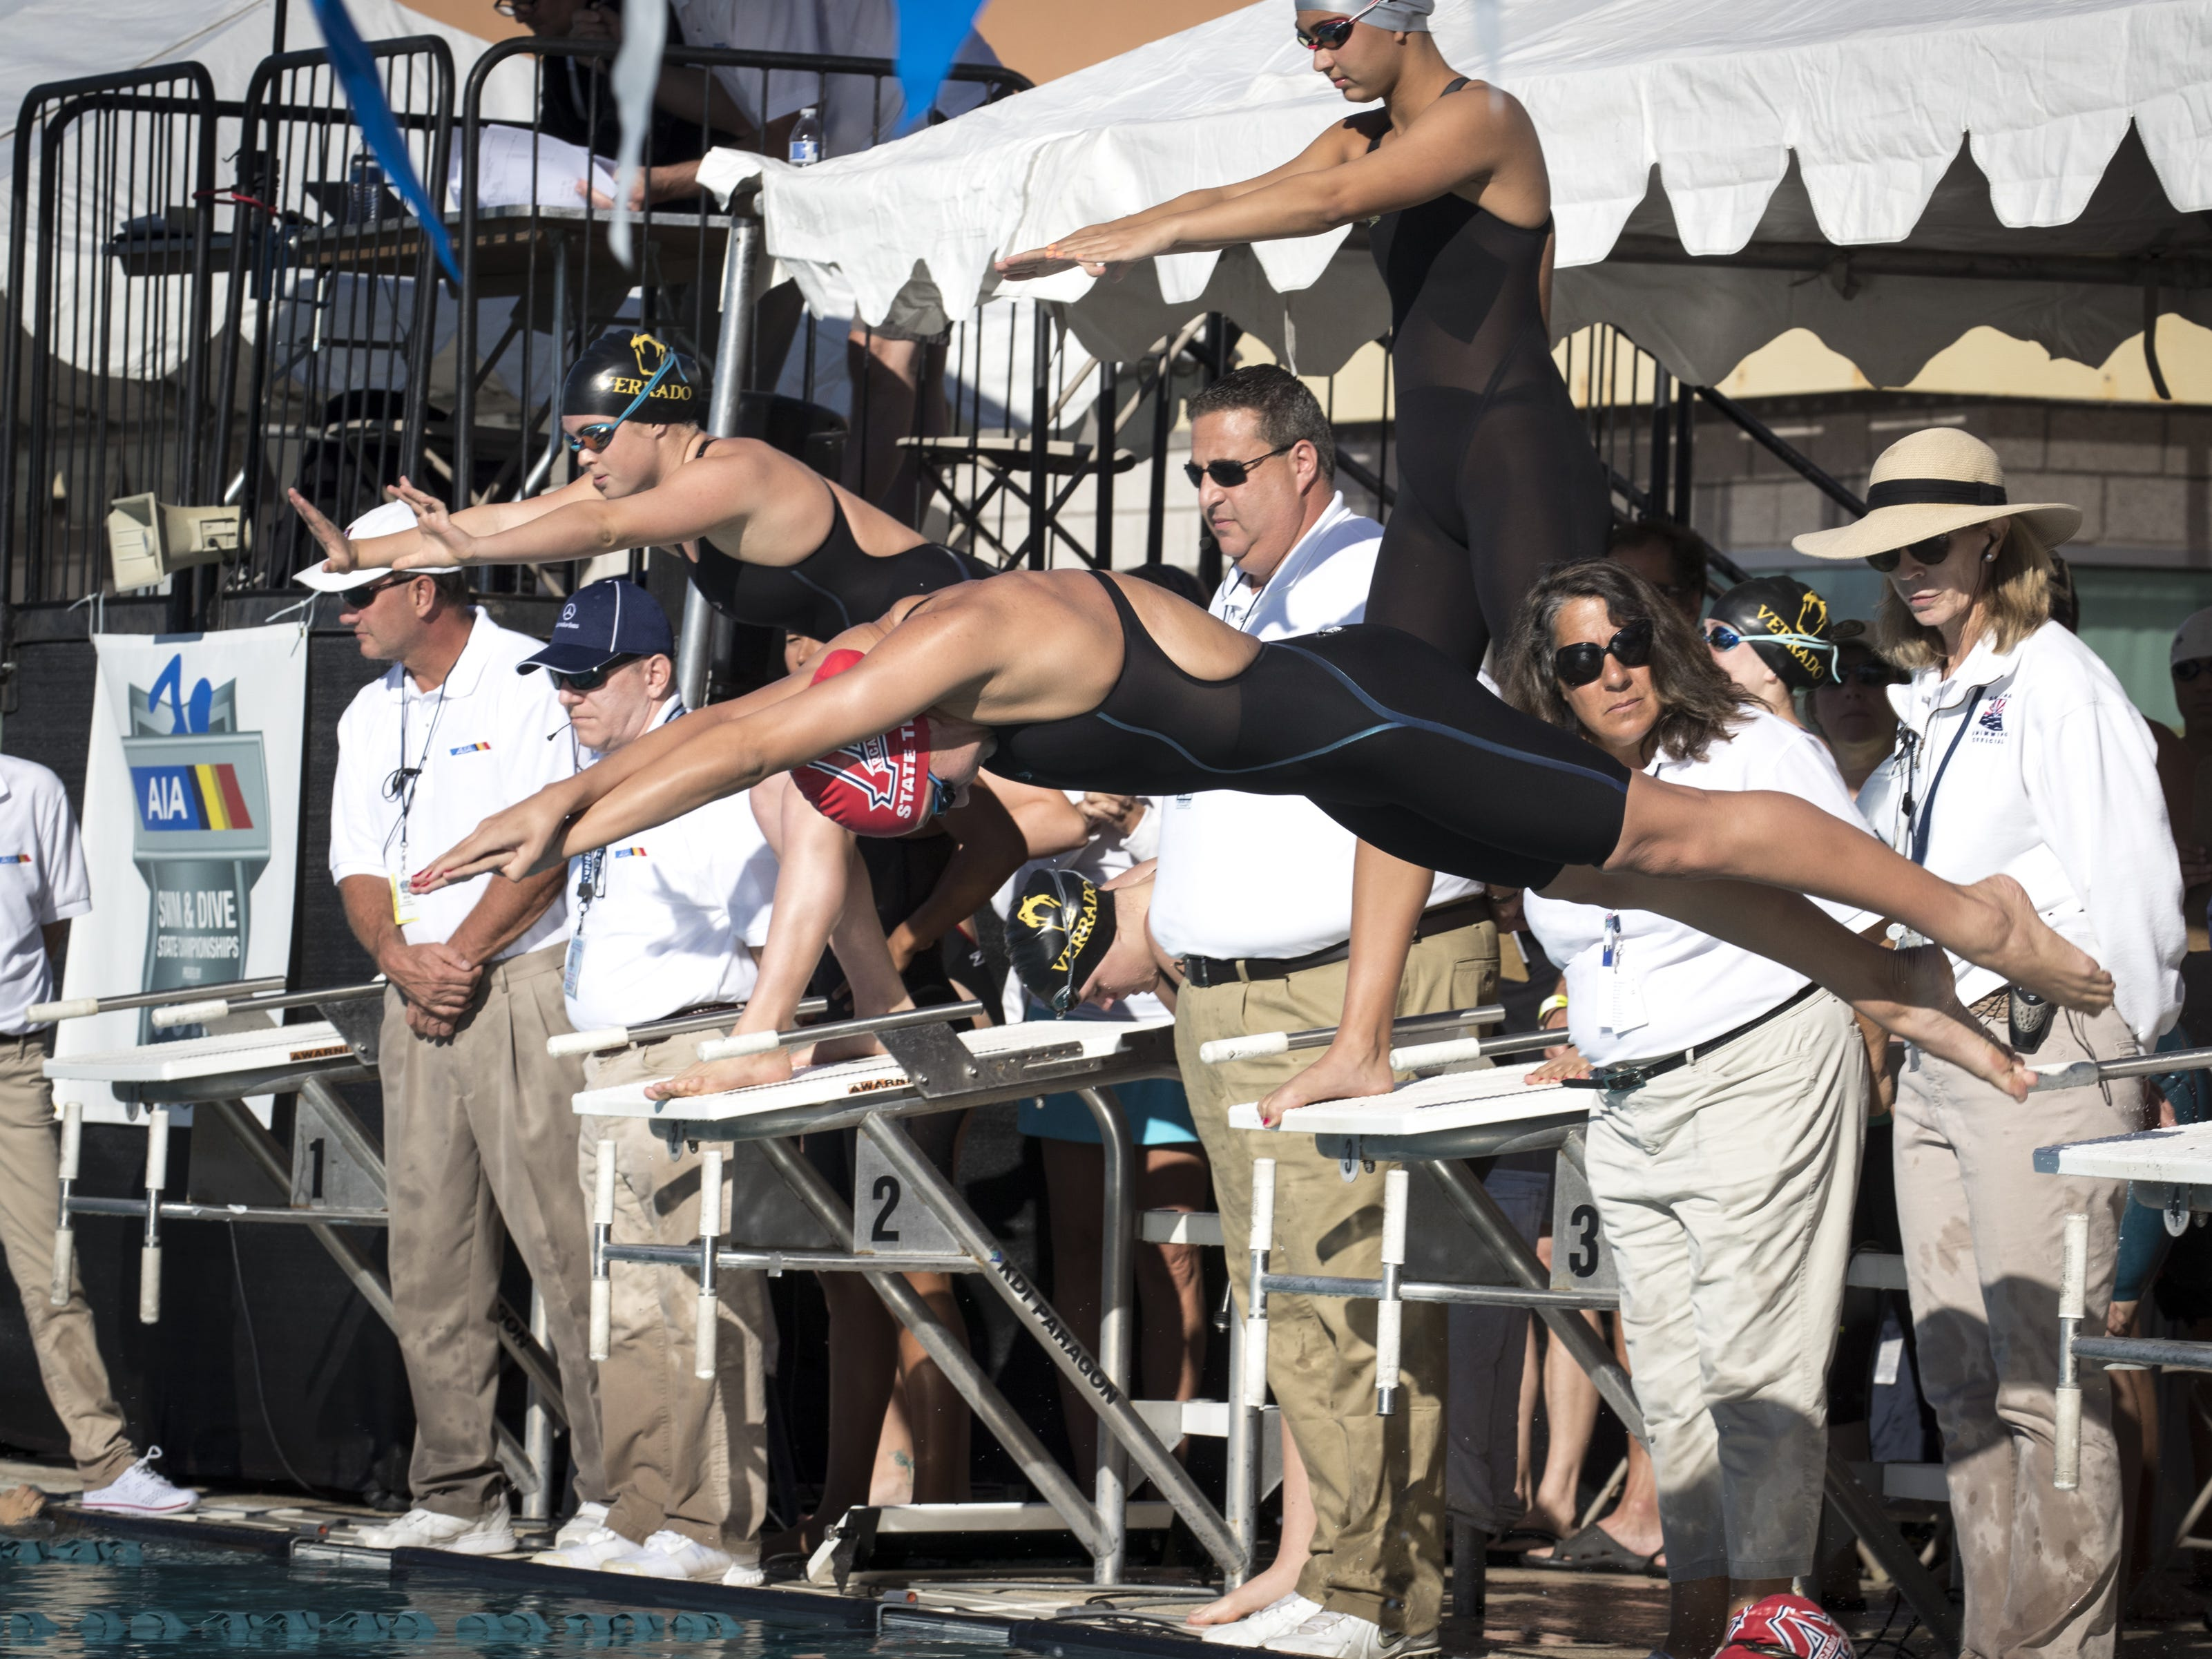 An Arcadia High School swimmer leaves the blocks during 200 Medley Relay, November 3, 2018, at the AIA Division II state swimming finals at the Skyline Aquatic Center, Mesa. Arcadia won the relay.